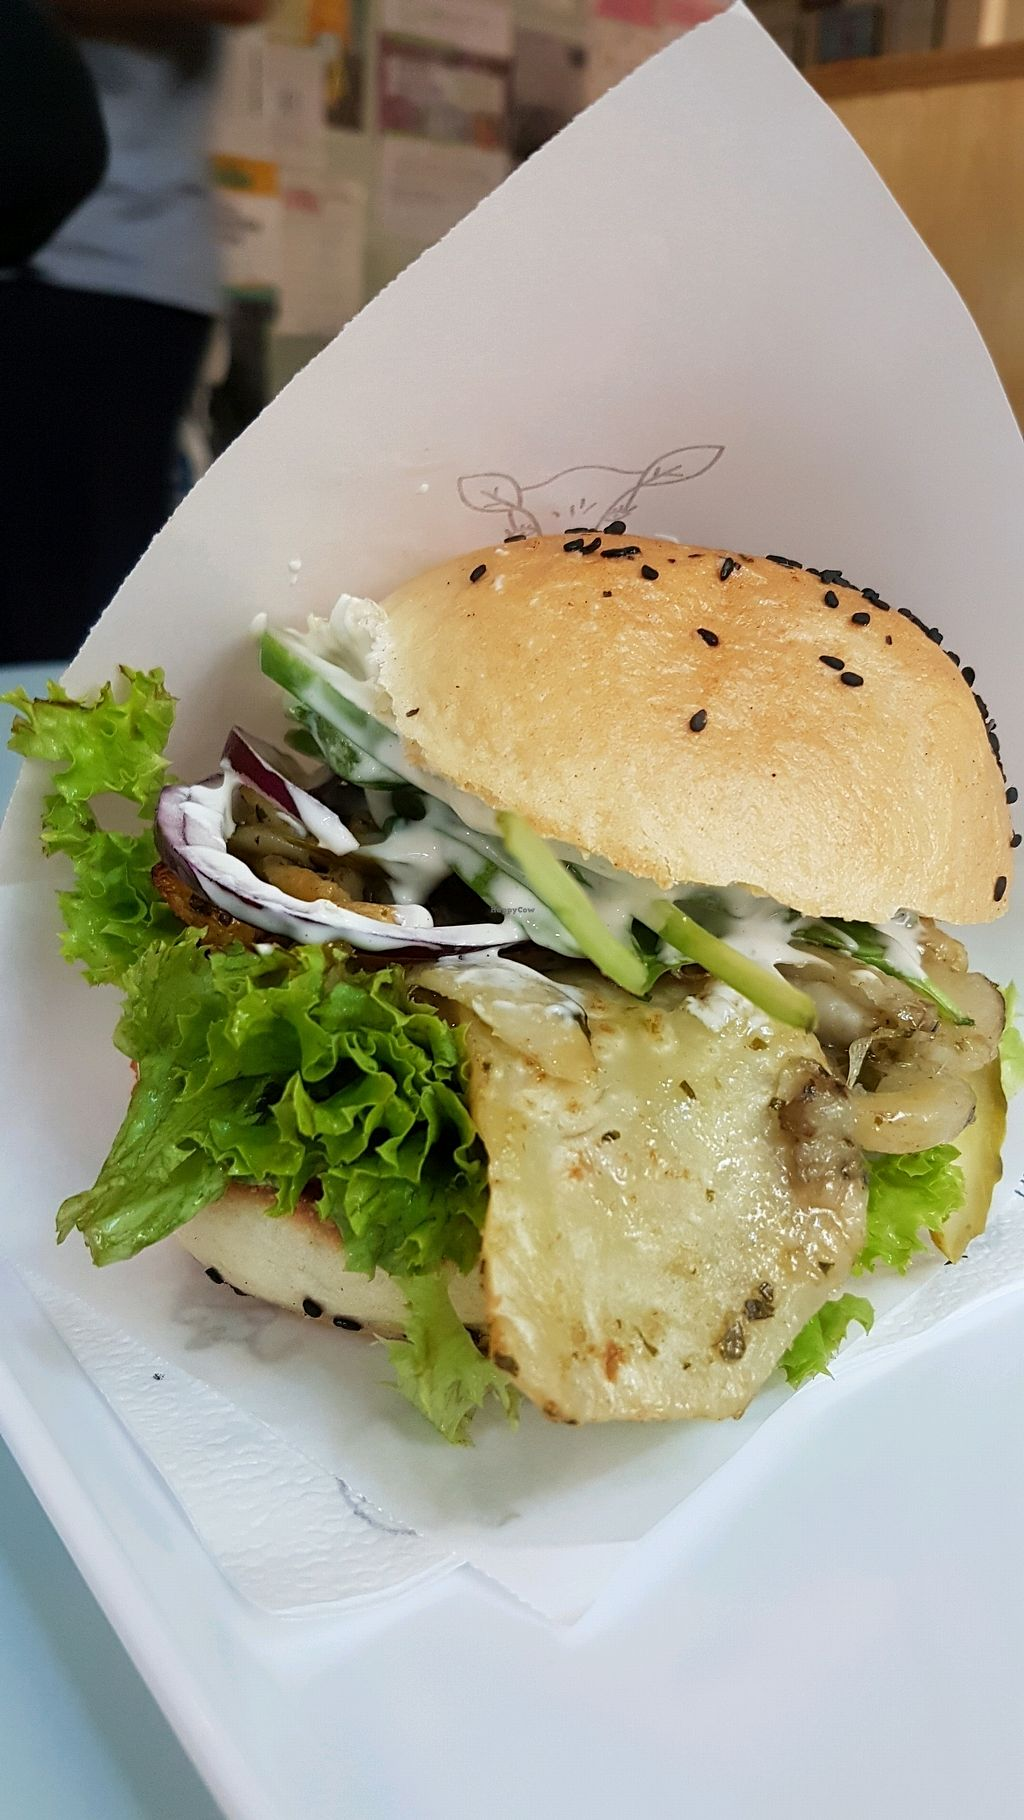 "Photo of Krowarzywa - Hoza  by <a href=""/members/profile/Amalie"">Amalie</a> <br/>roasted vegetable burger.. Delicious!!!!! <br/> September 17, 2017  - <a href='/contact/abuse/image/37990/305398'>Report</a>"